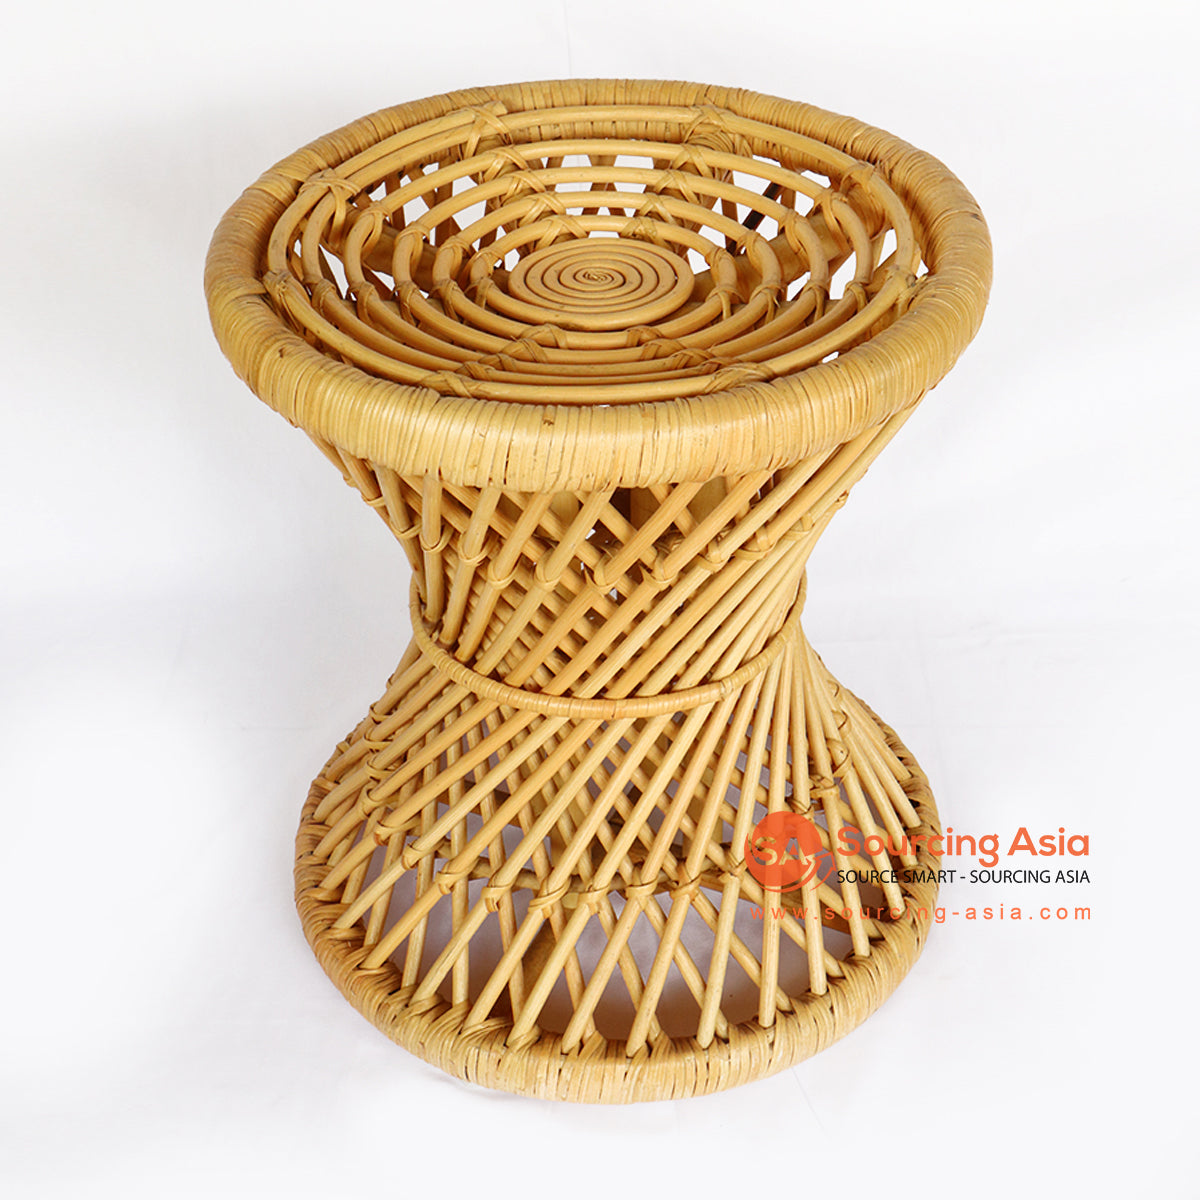 BNTC006-9 ROUND TWIST RATTAN SIDE TABLE